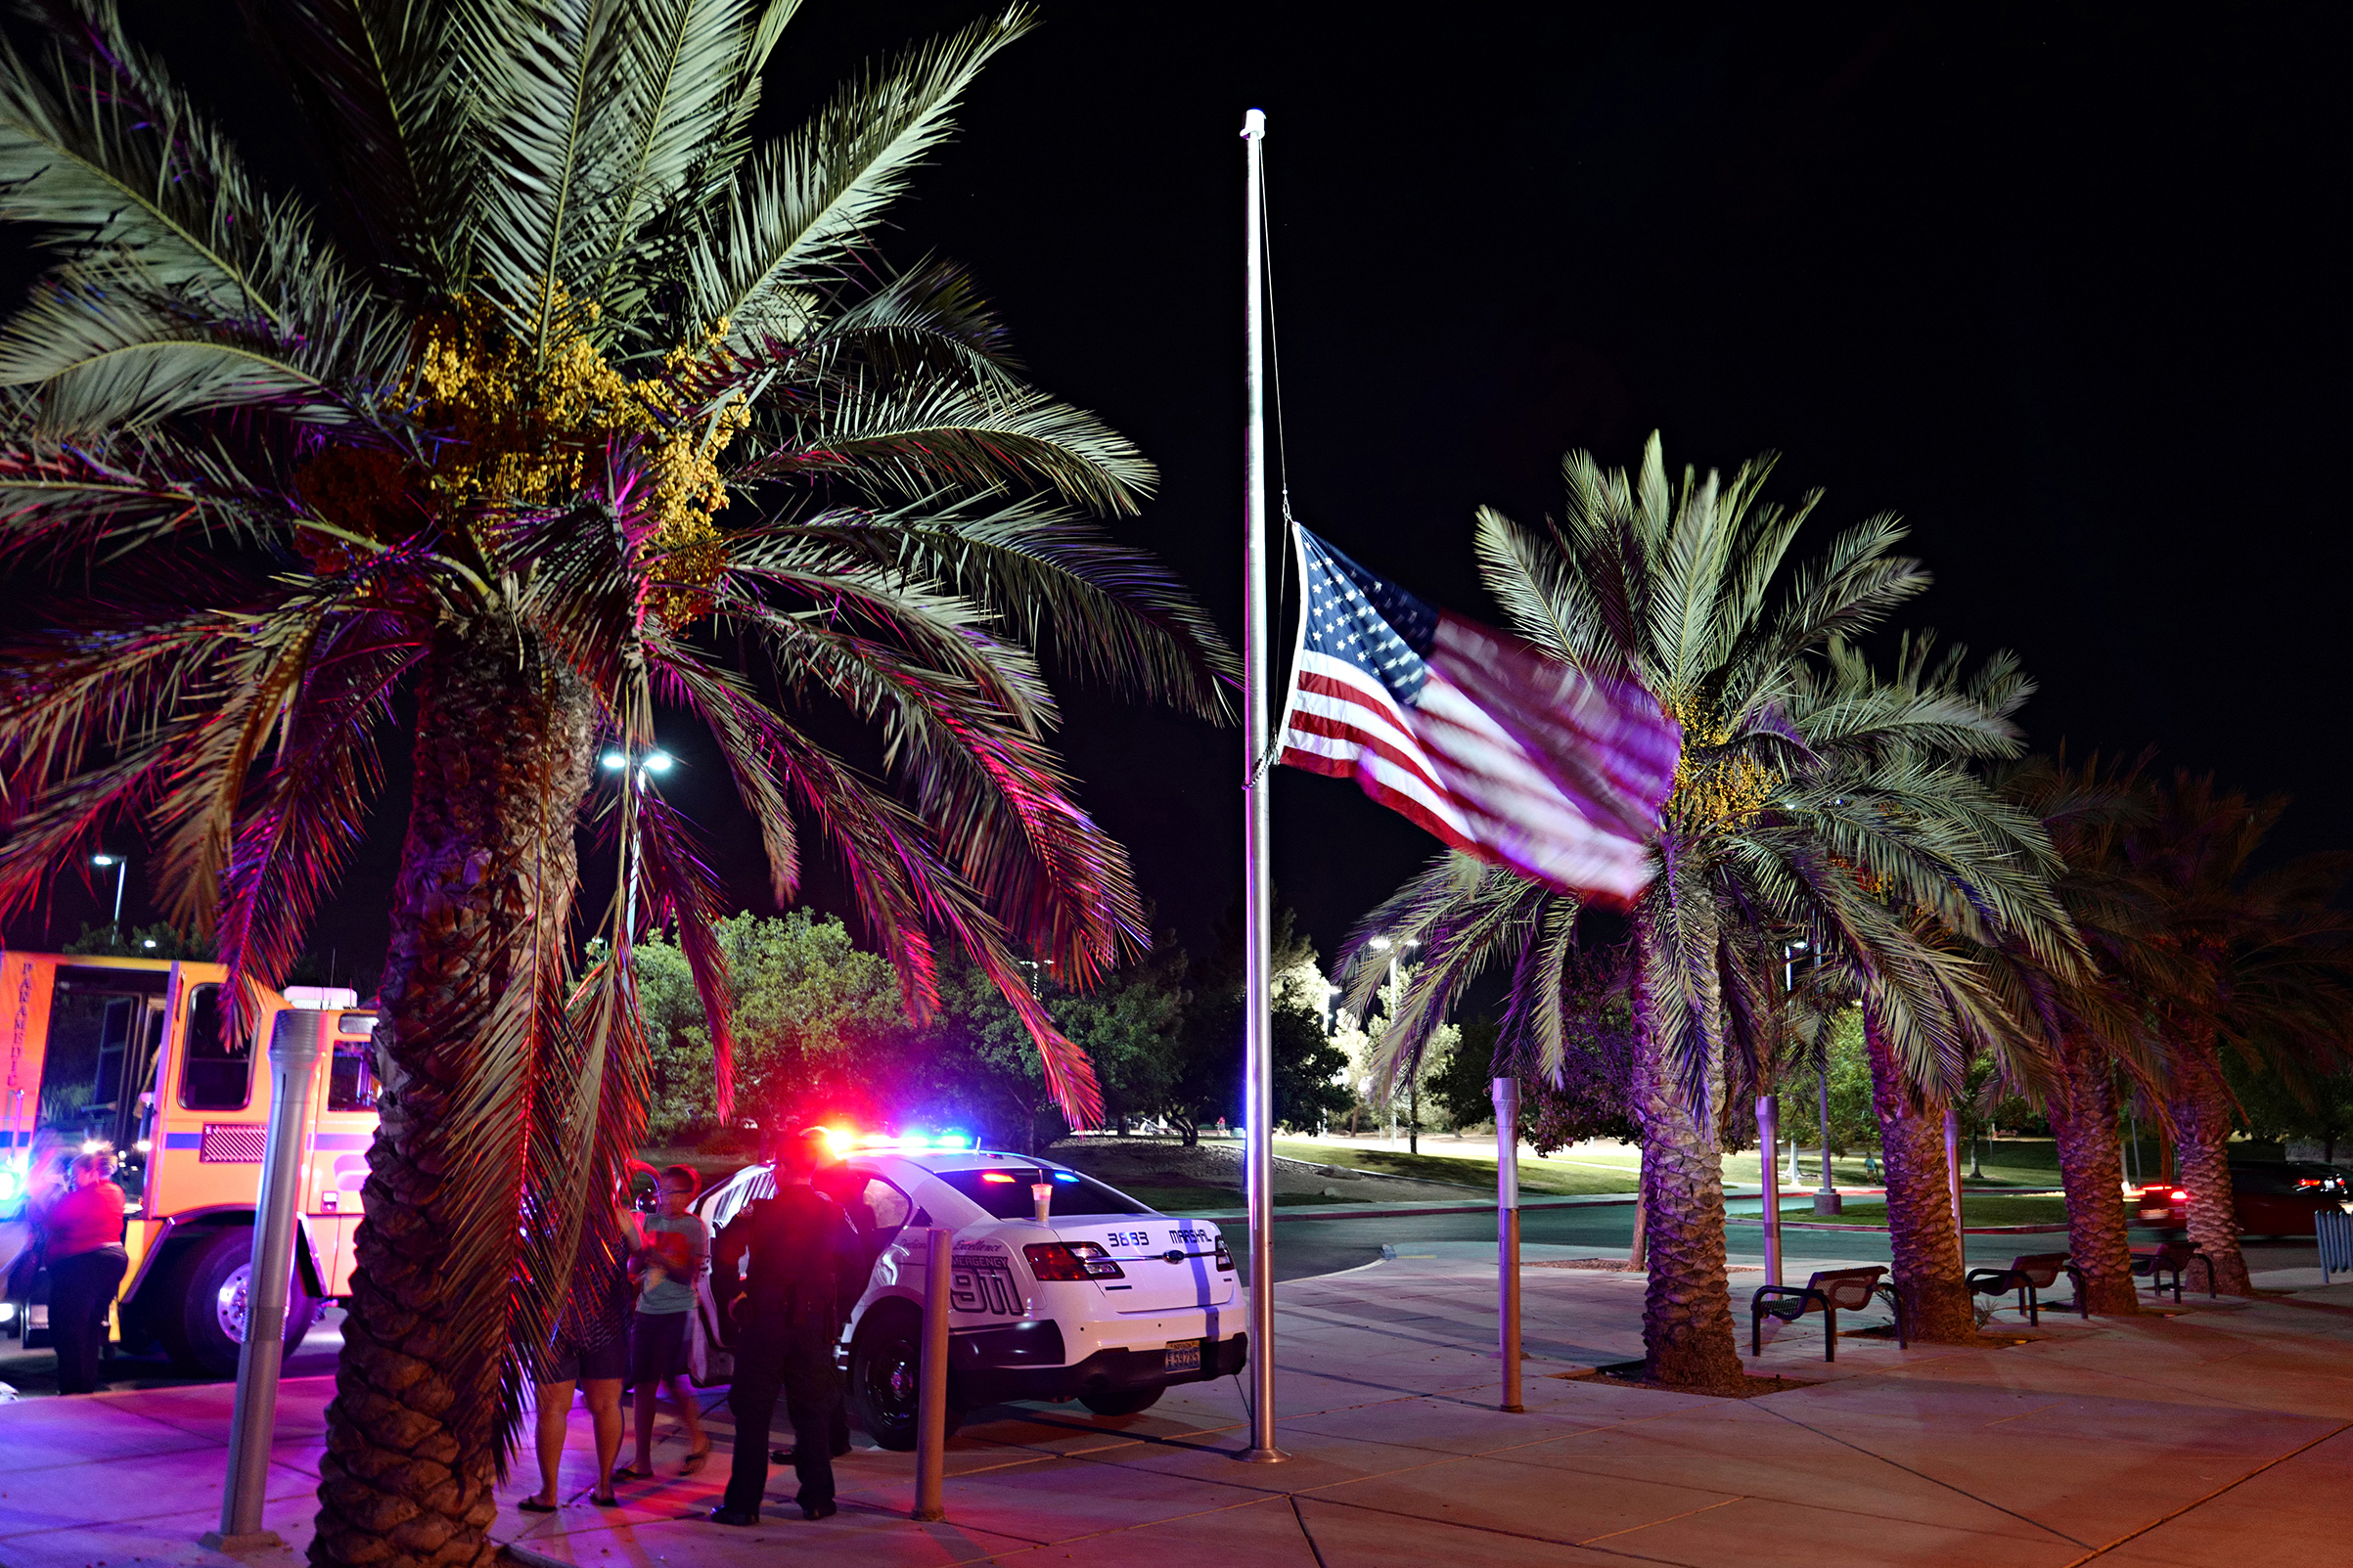 A flag at half-staff in honor of the victims and survivors of the mass shooting, Las Vegas, Oct. 3, 2017.